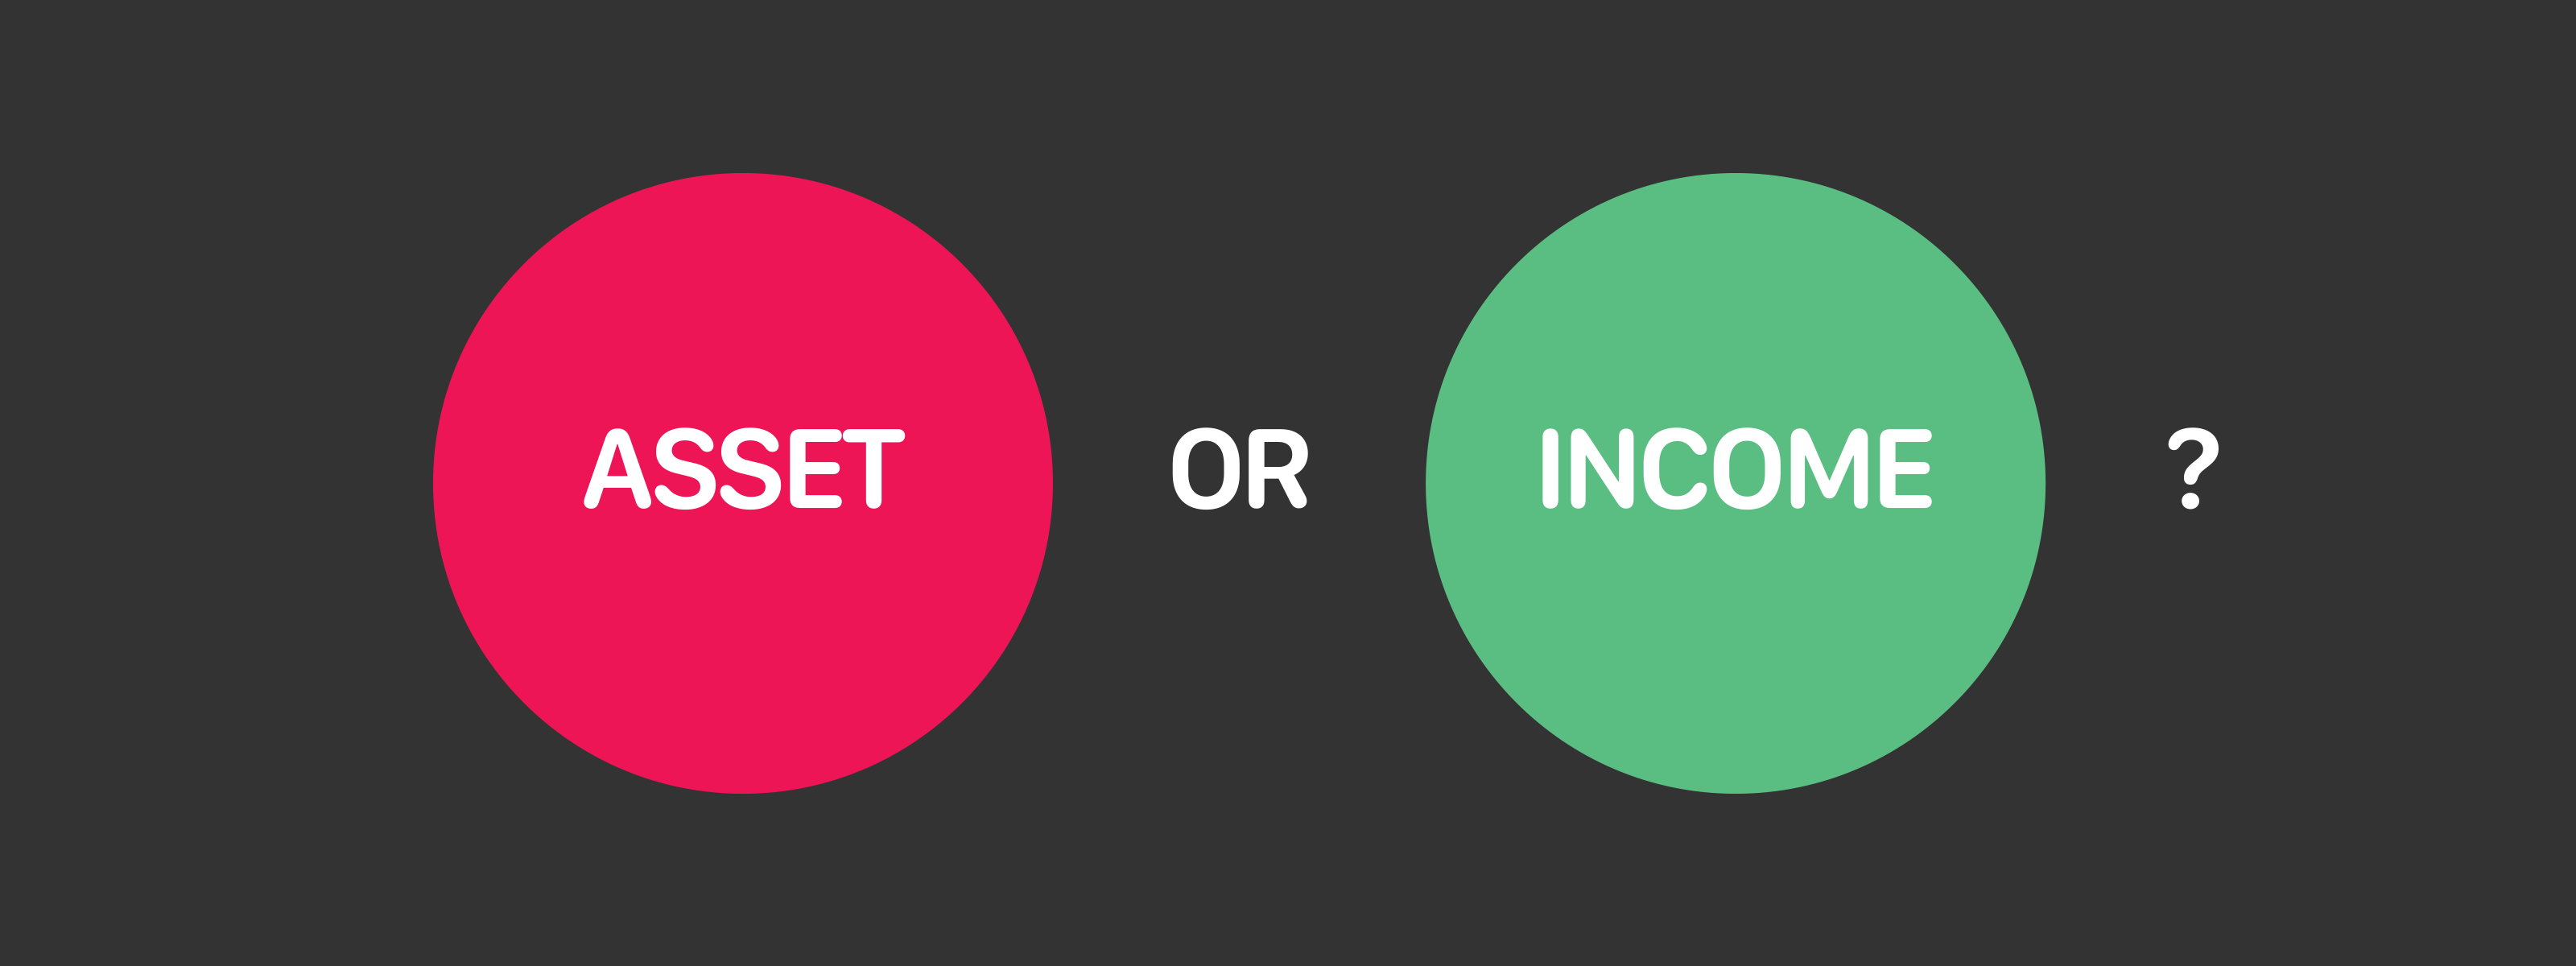 Asset or Income?